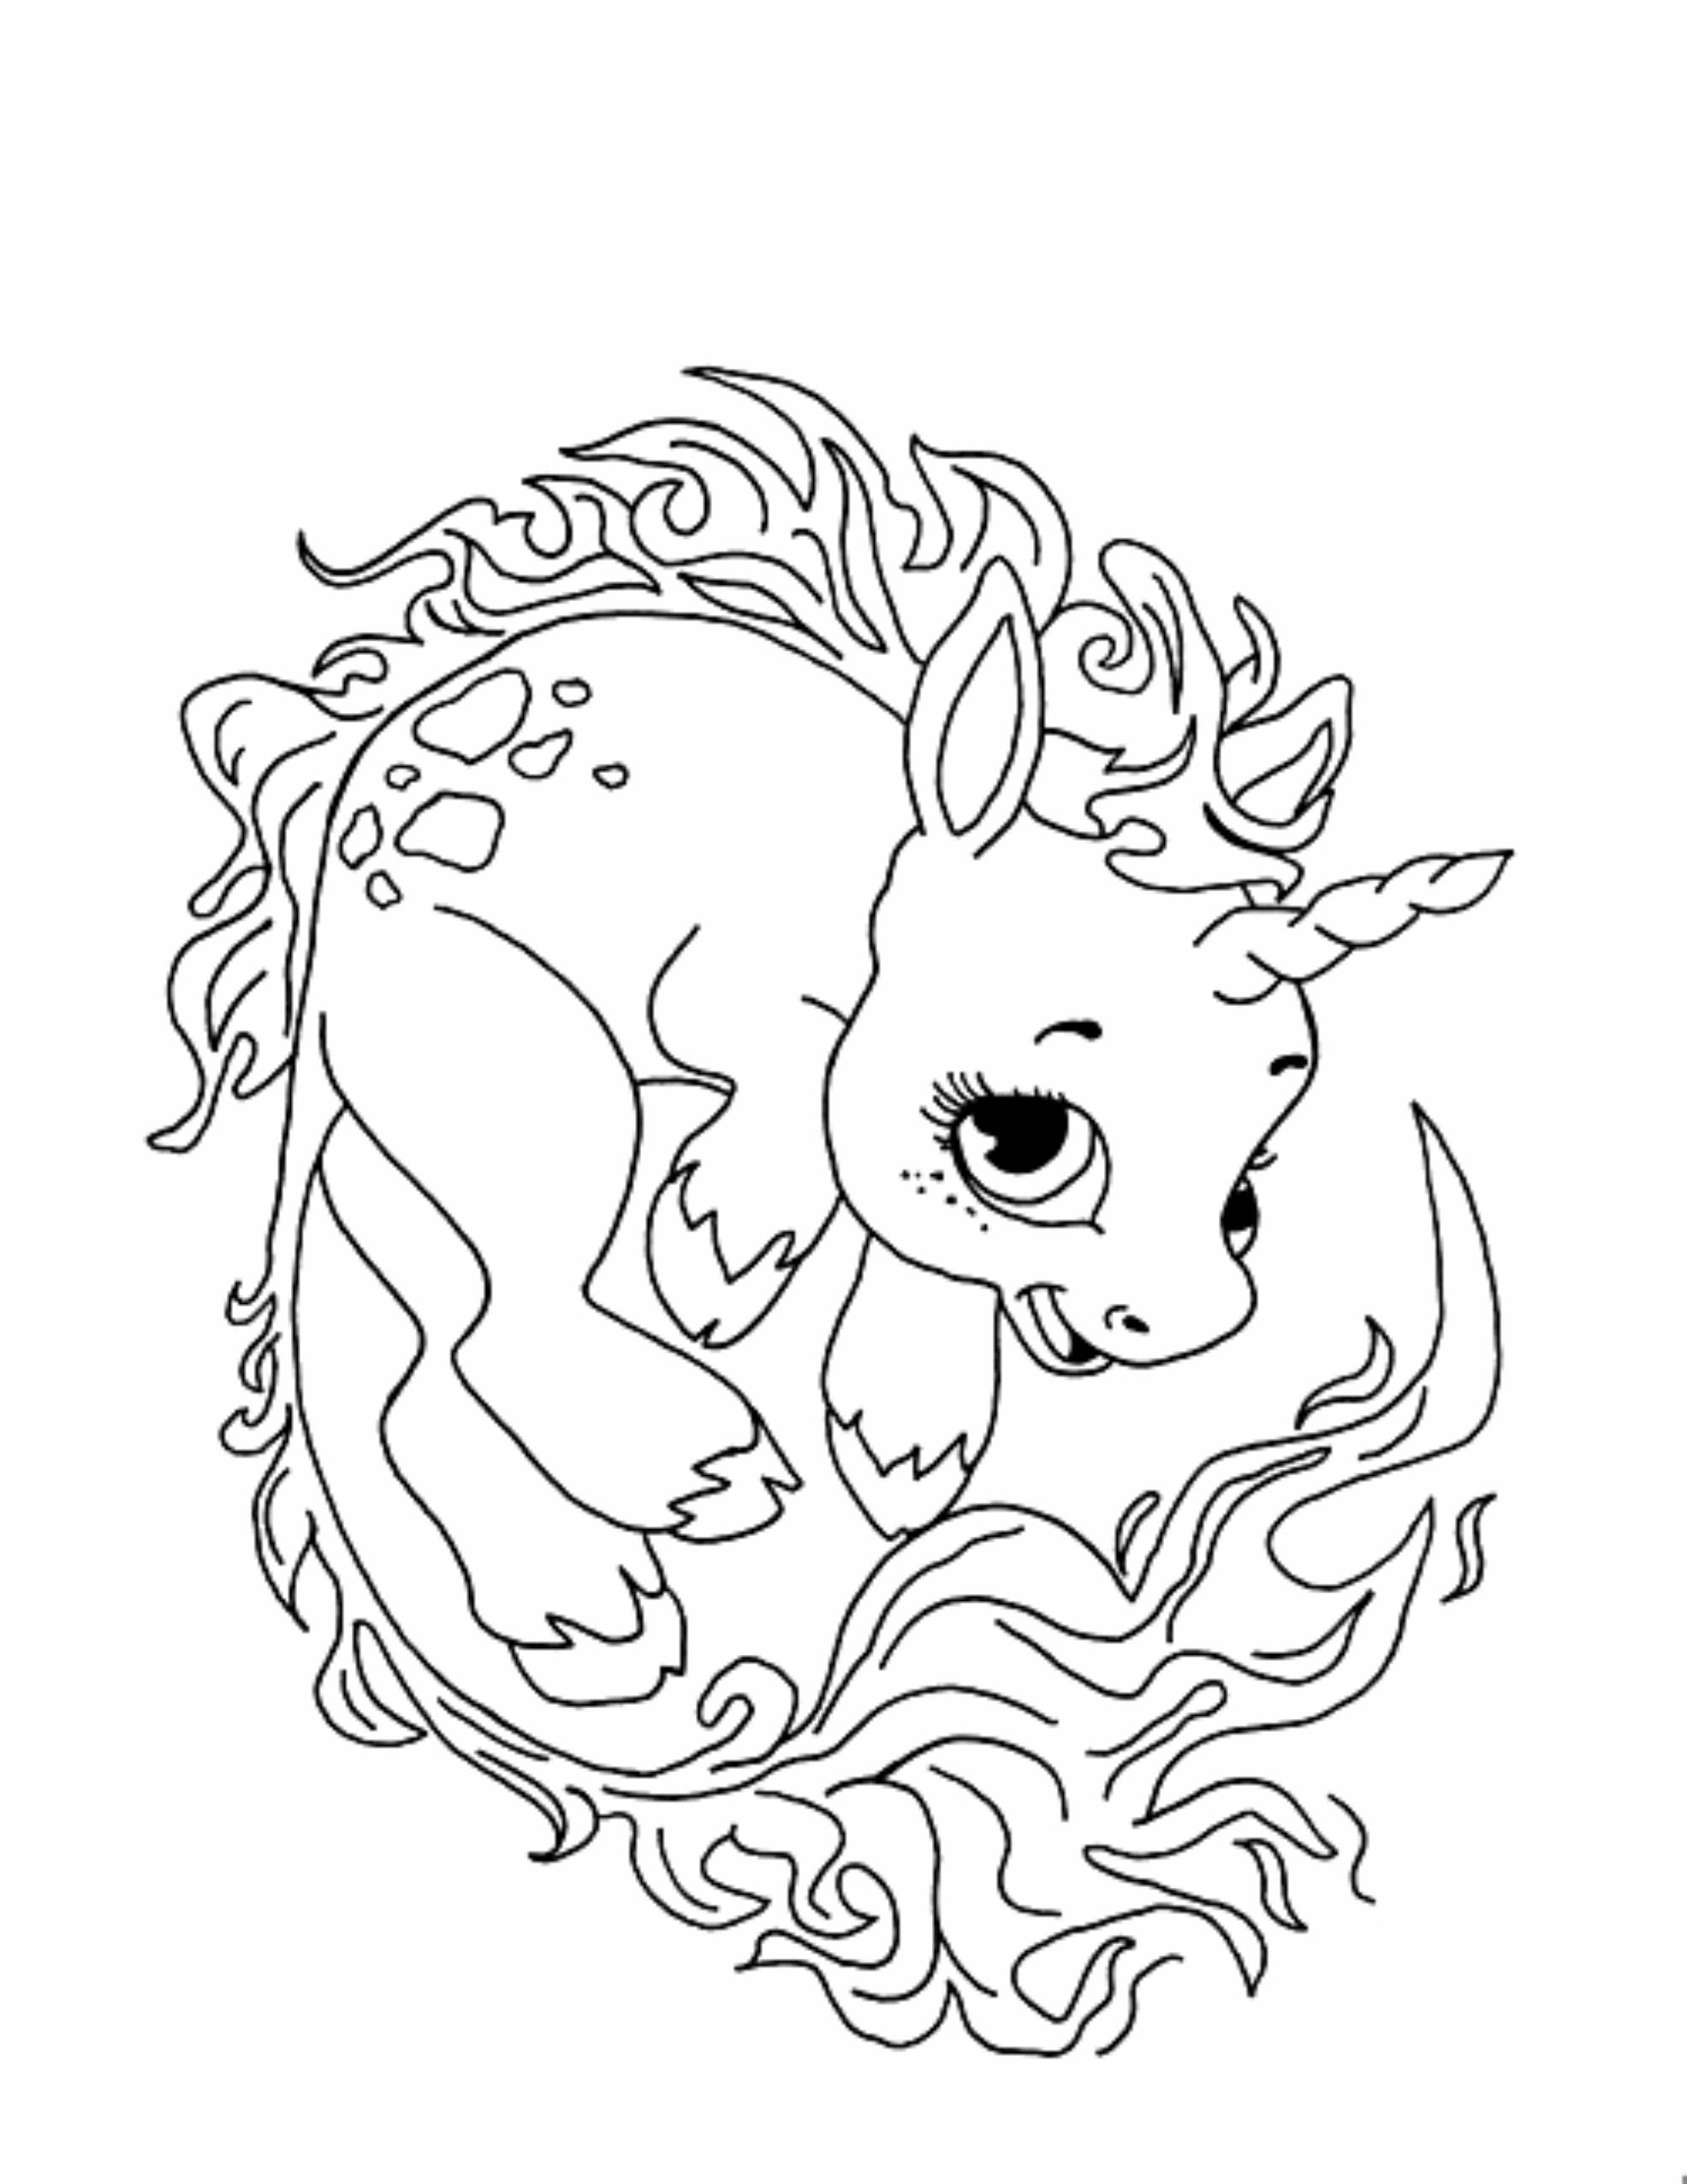 unicorn color page adorable unicorn coloring pages for girls and adults updated unicorn color page